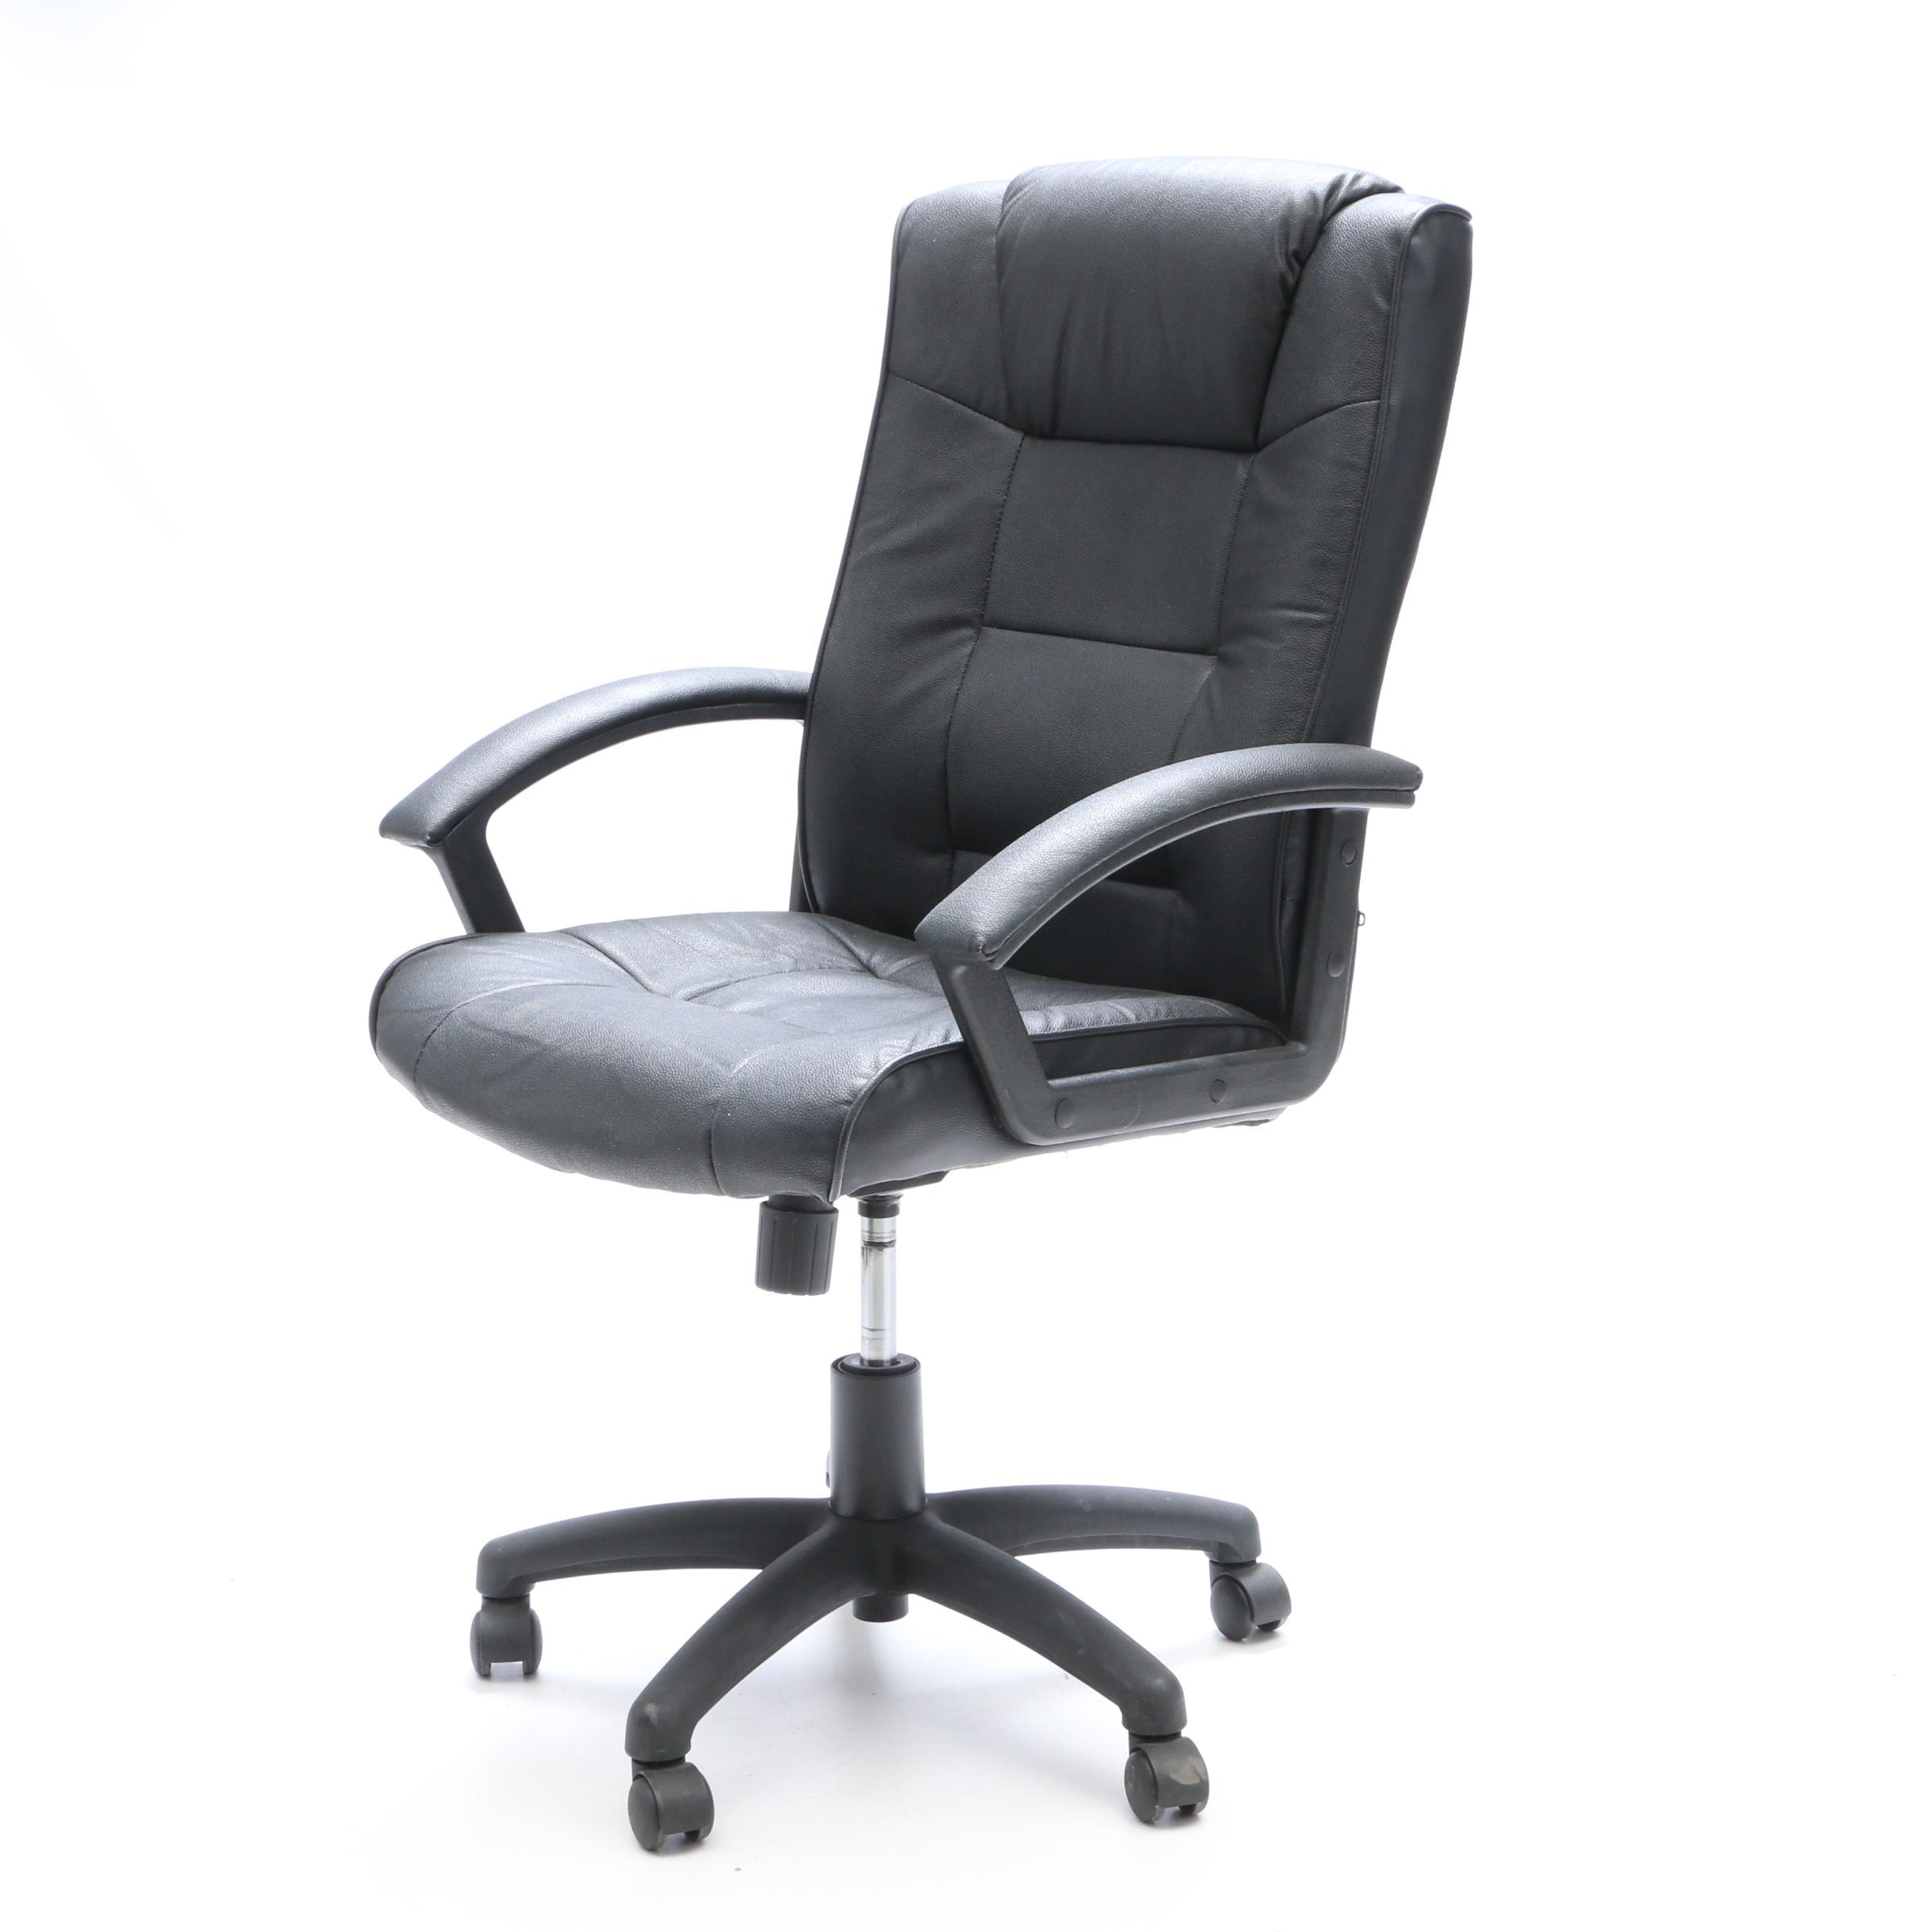 Desk Chair in Black